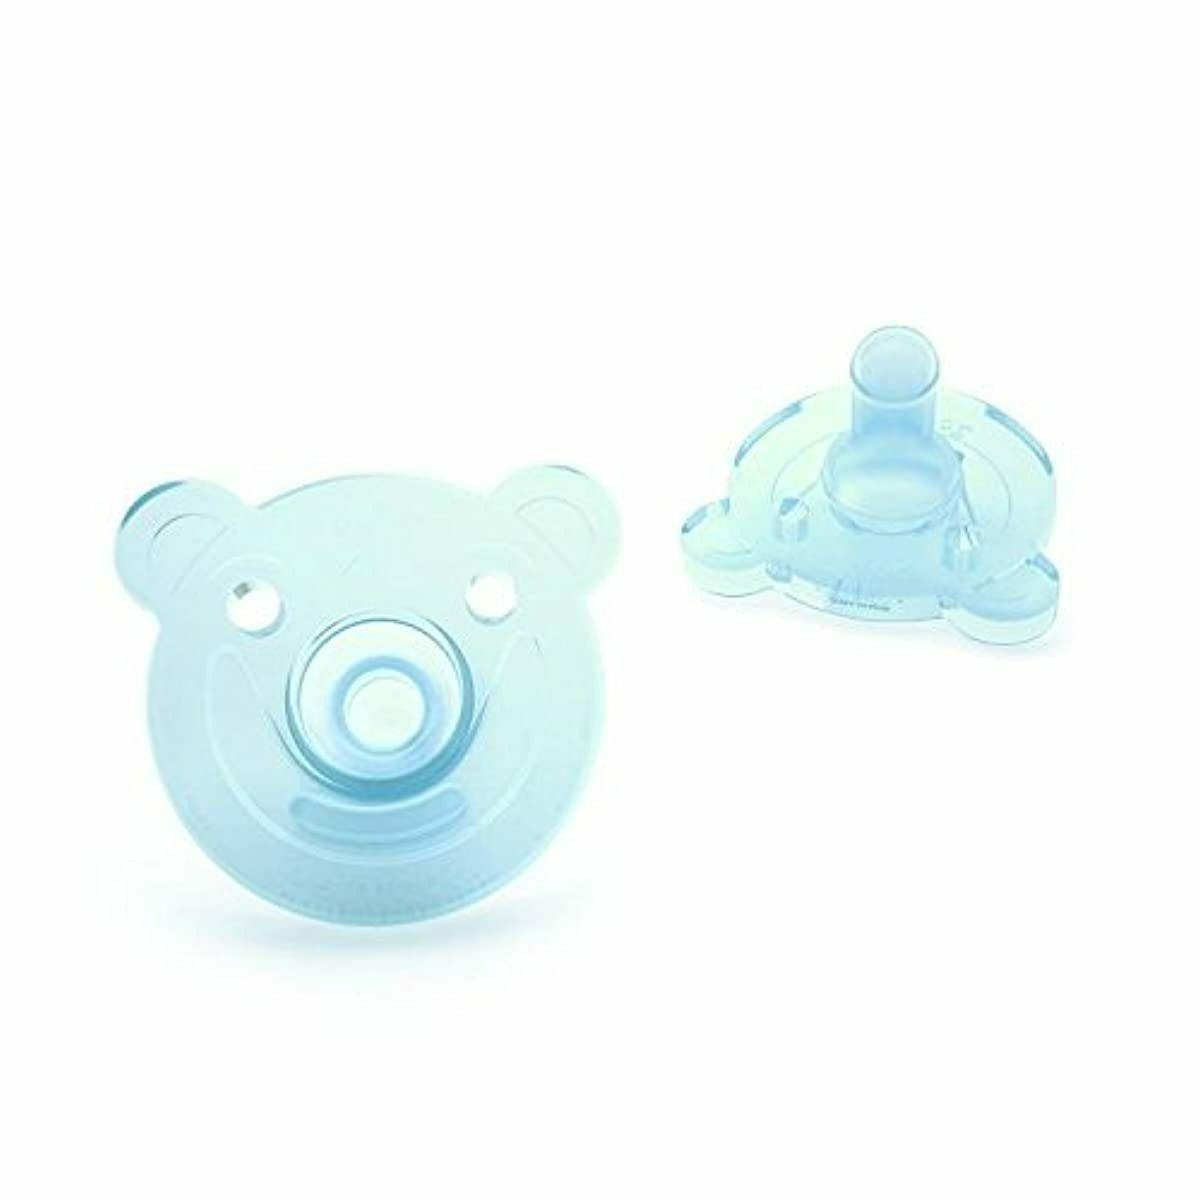 Philips Baby Avent Soothie Pacifier, newborn infant authoriz